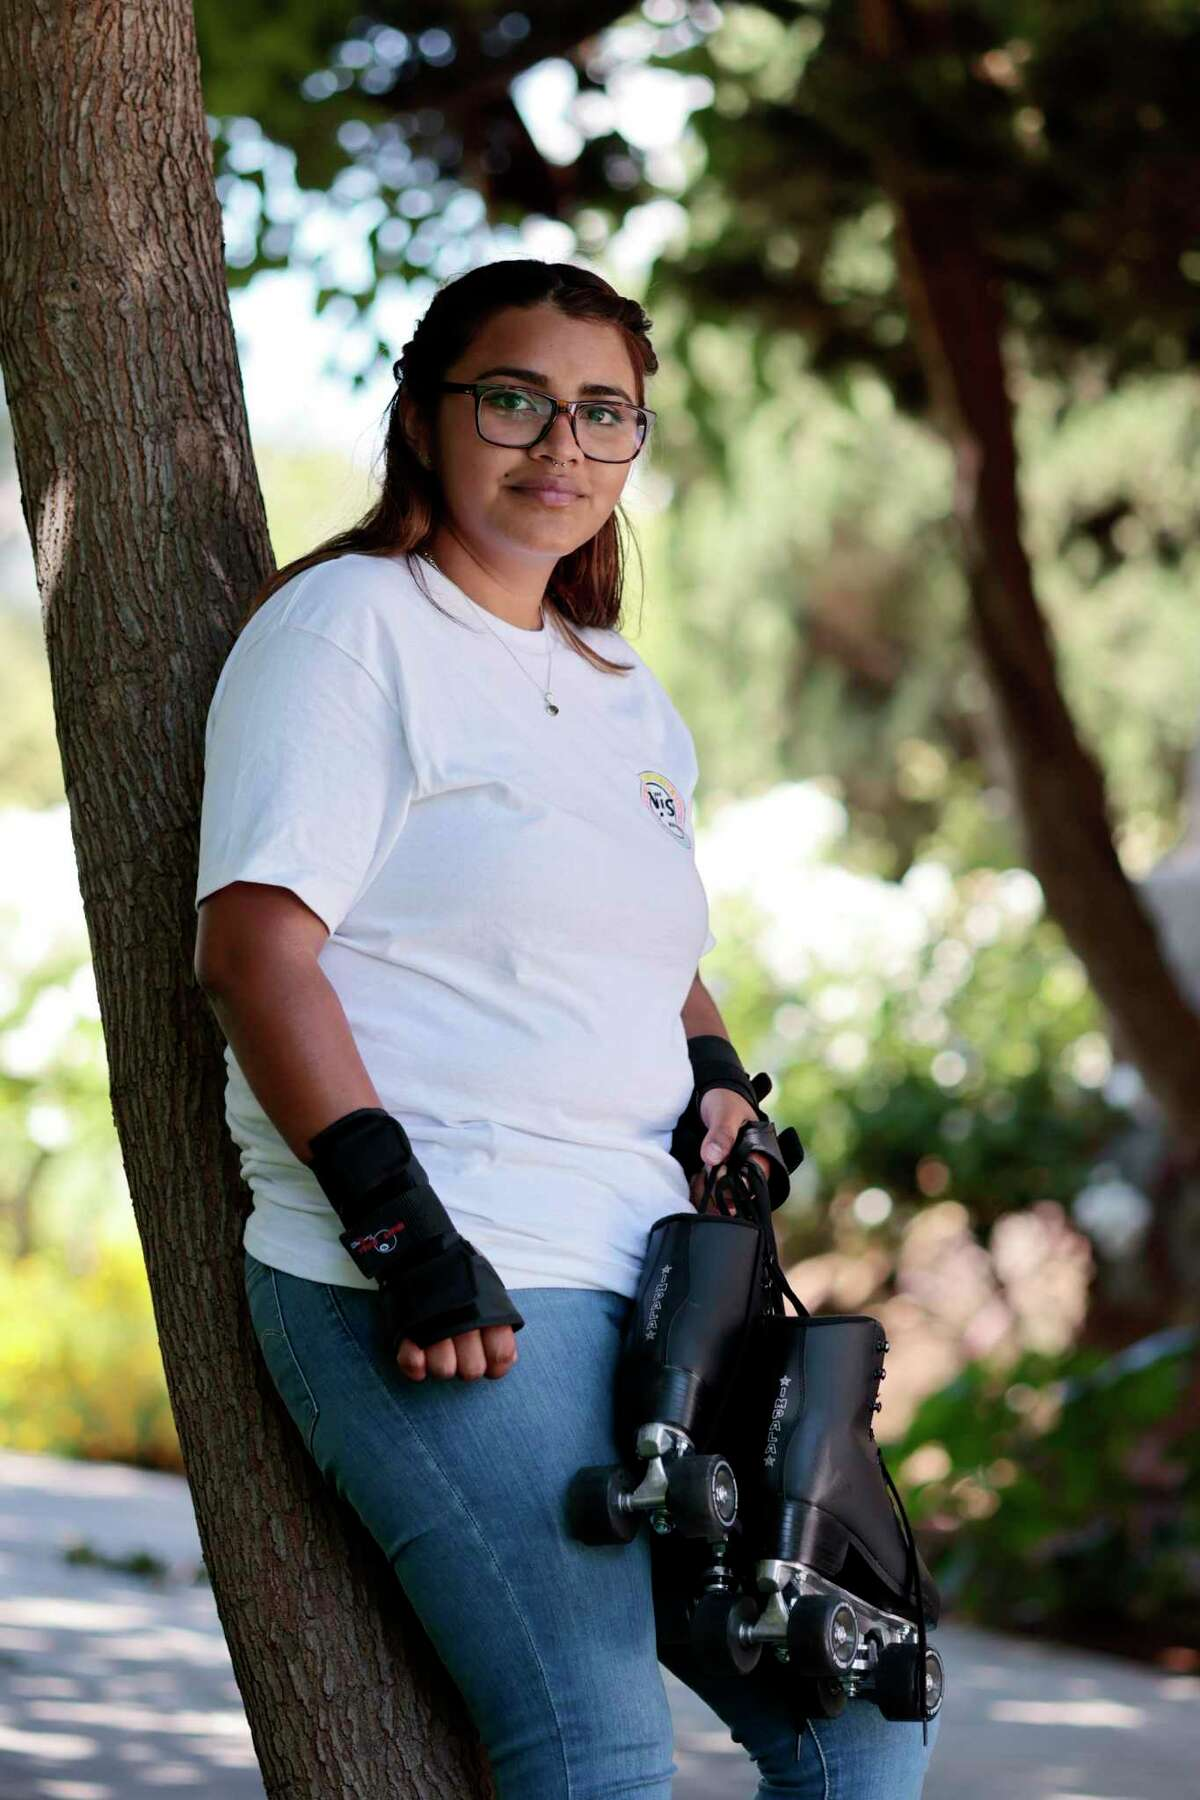 Veronica Vieyra, who graduated from San Jose State University in May, is one of 72 former foster youths who received monthly payments under a universal income pilot program in Santa Clara County.